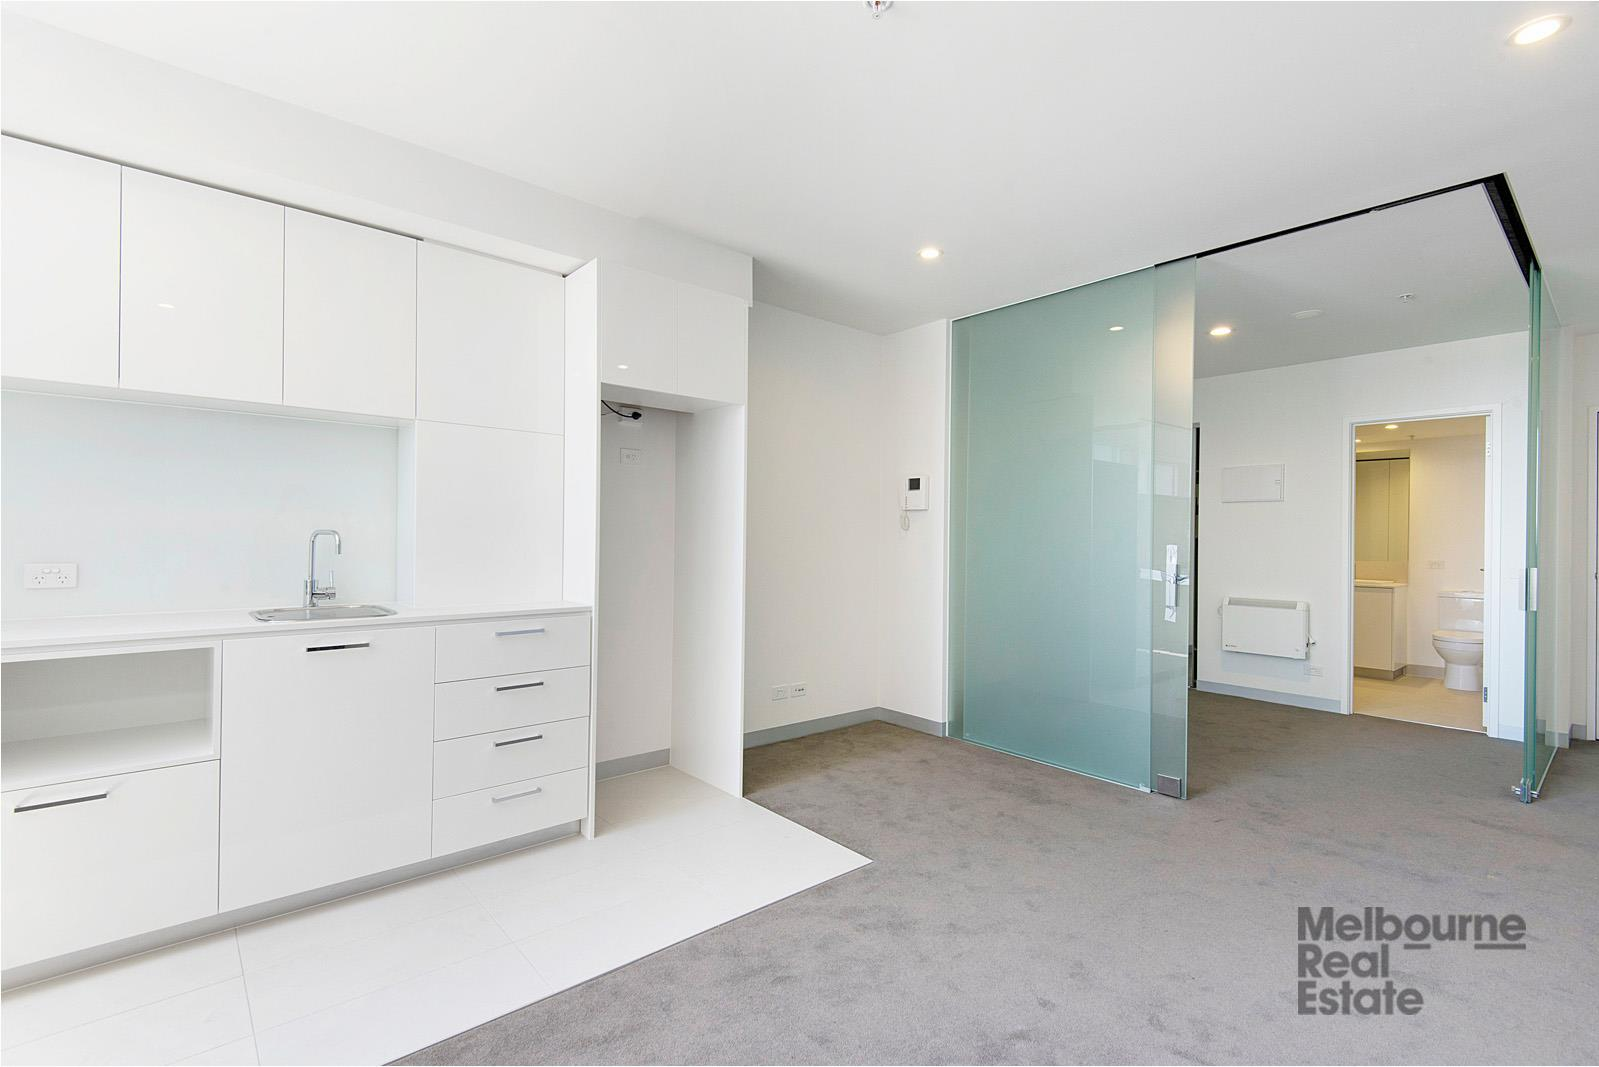 6A Leicester Street, Carlton VIC 3053 - Apartment For Rent - $400